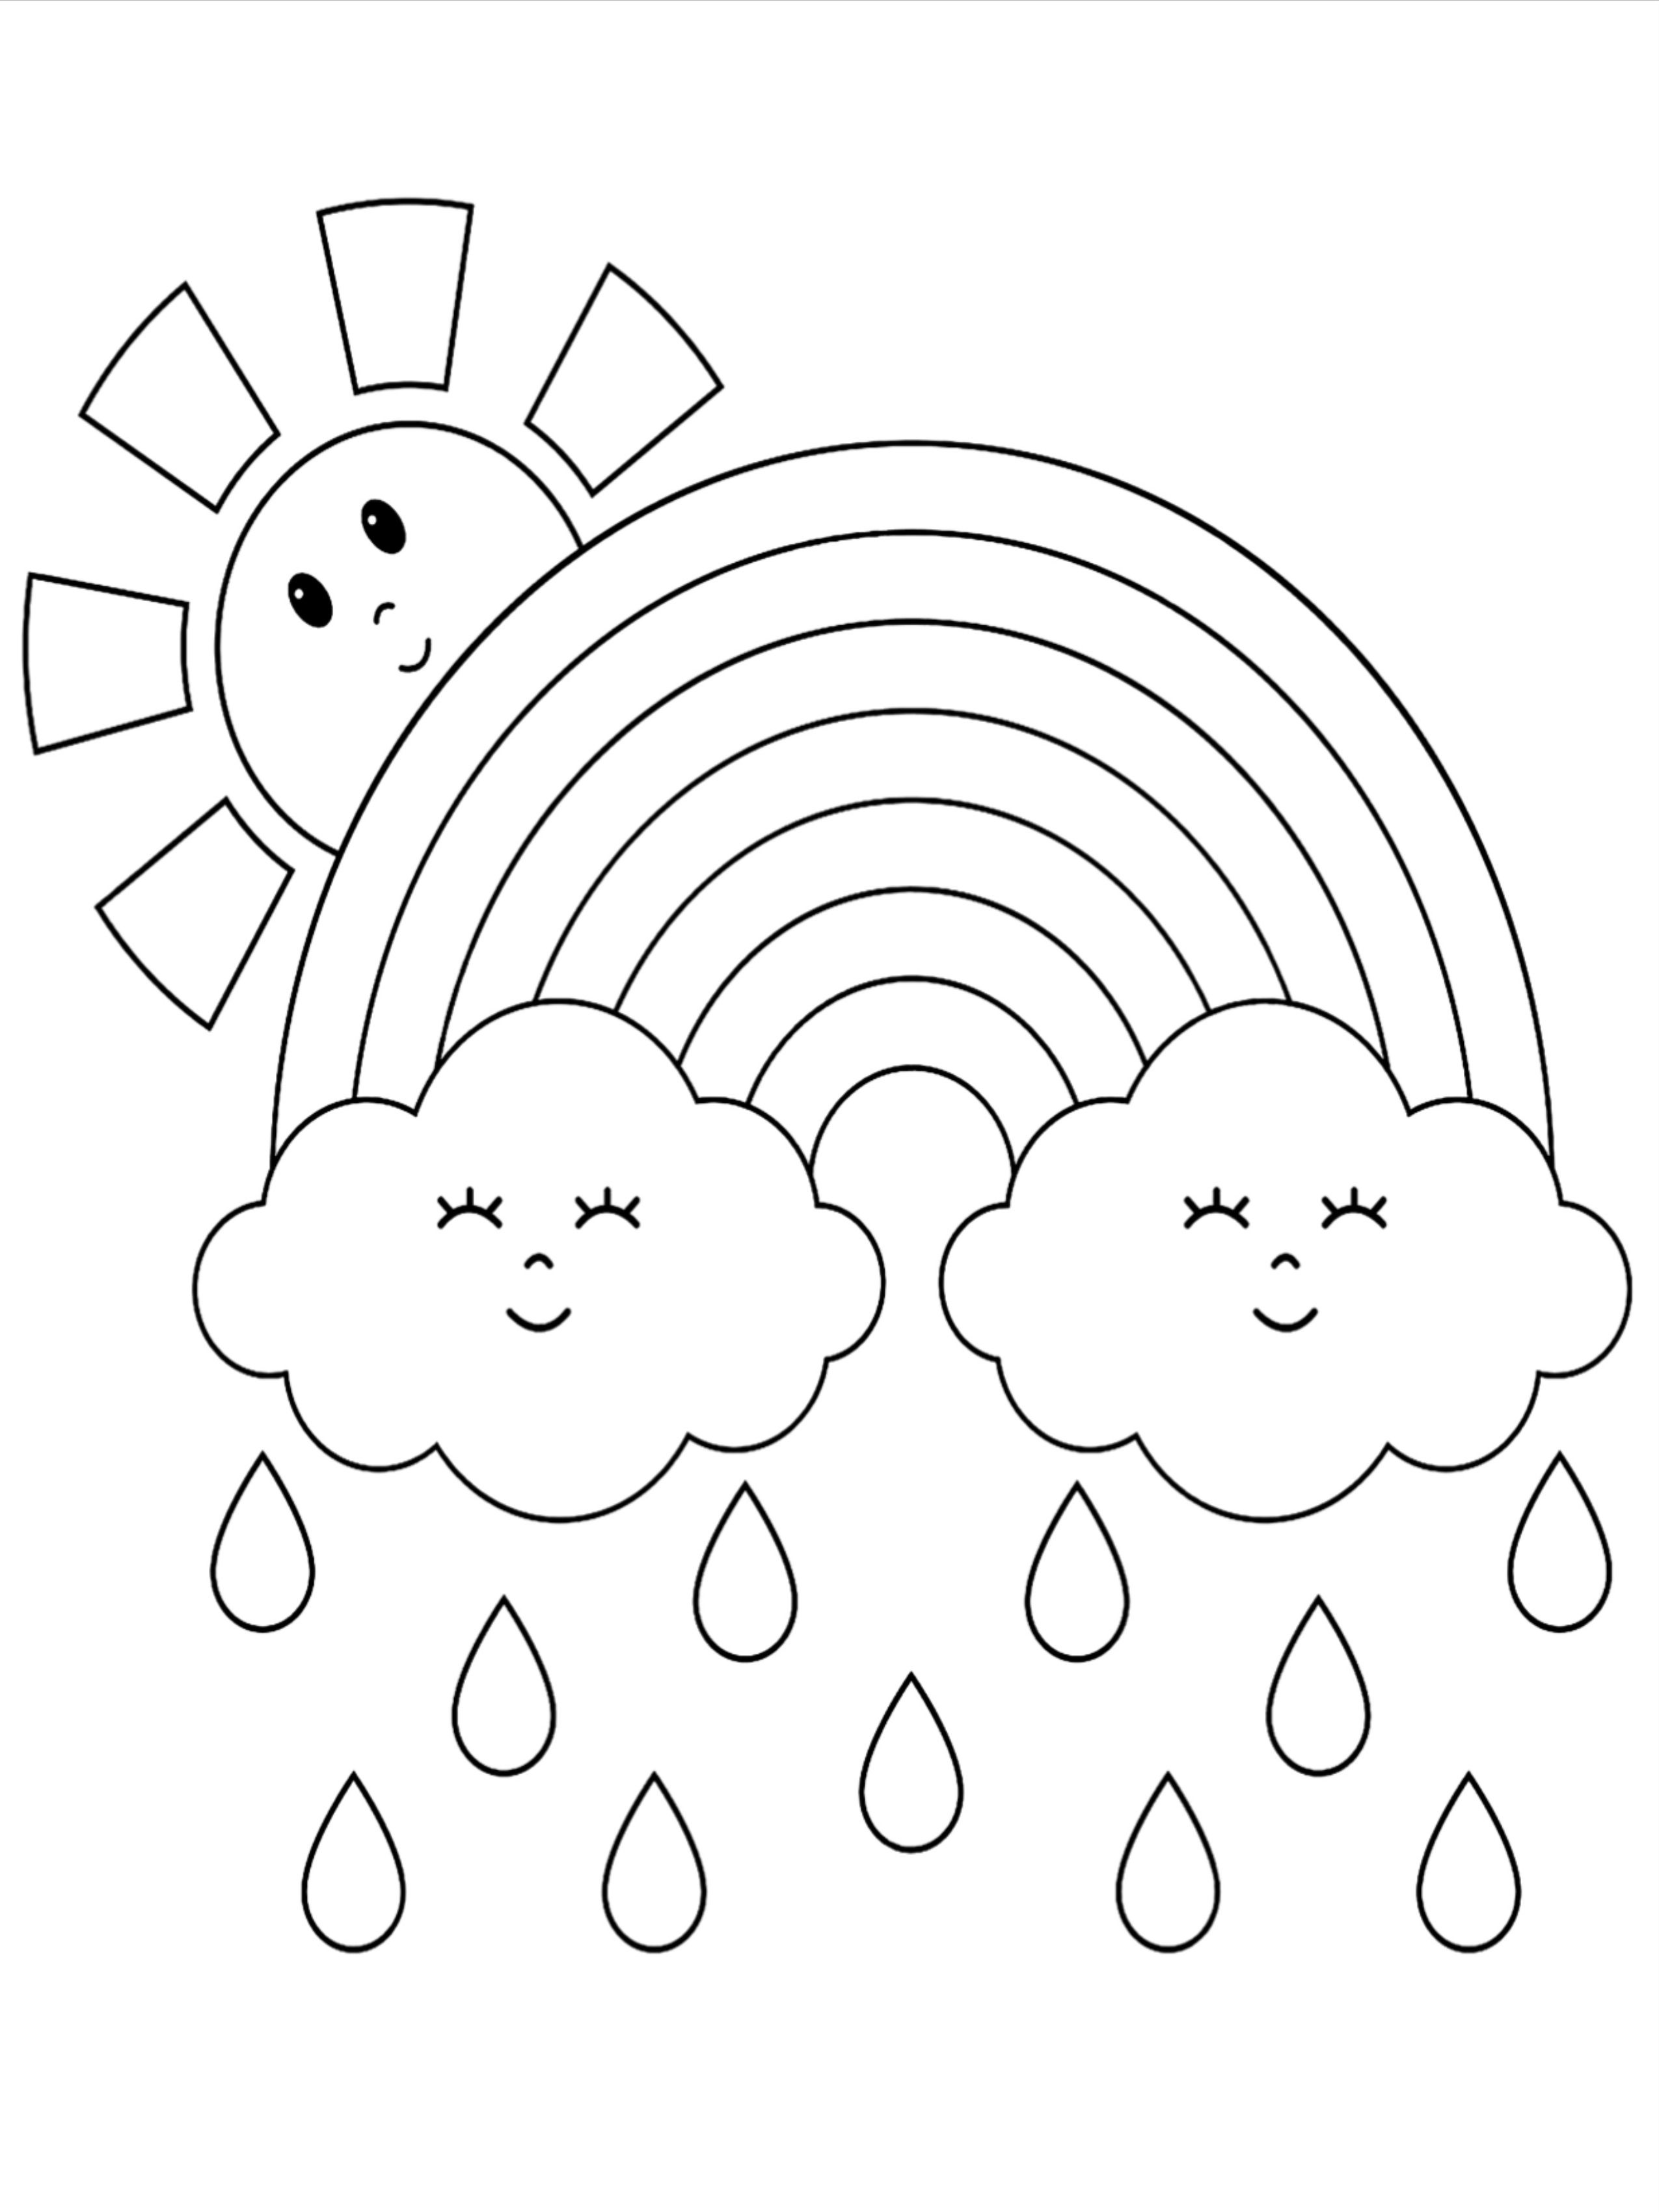 50 Weather Coloring Pages For Kids Unicorn Coloring Pages Coloring Pages Preschool Coloring Pages